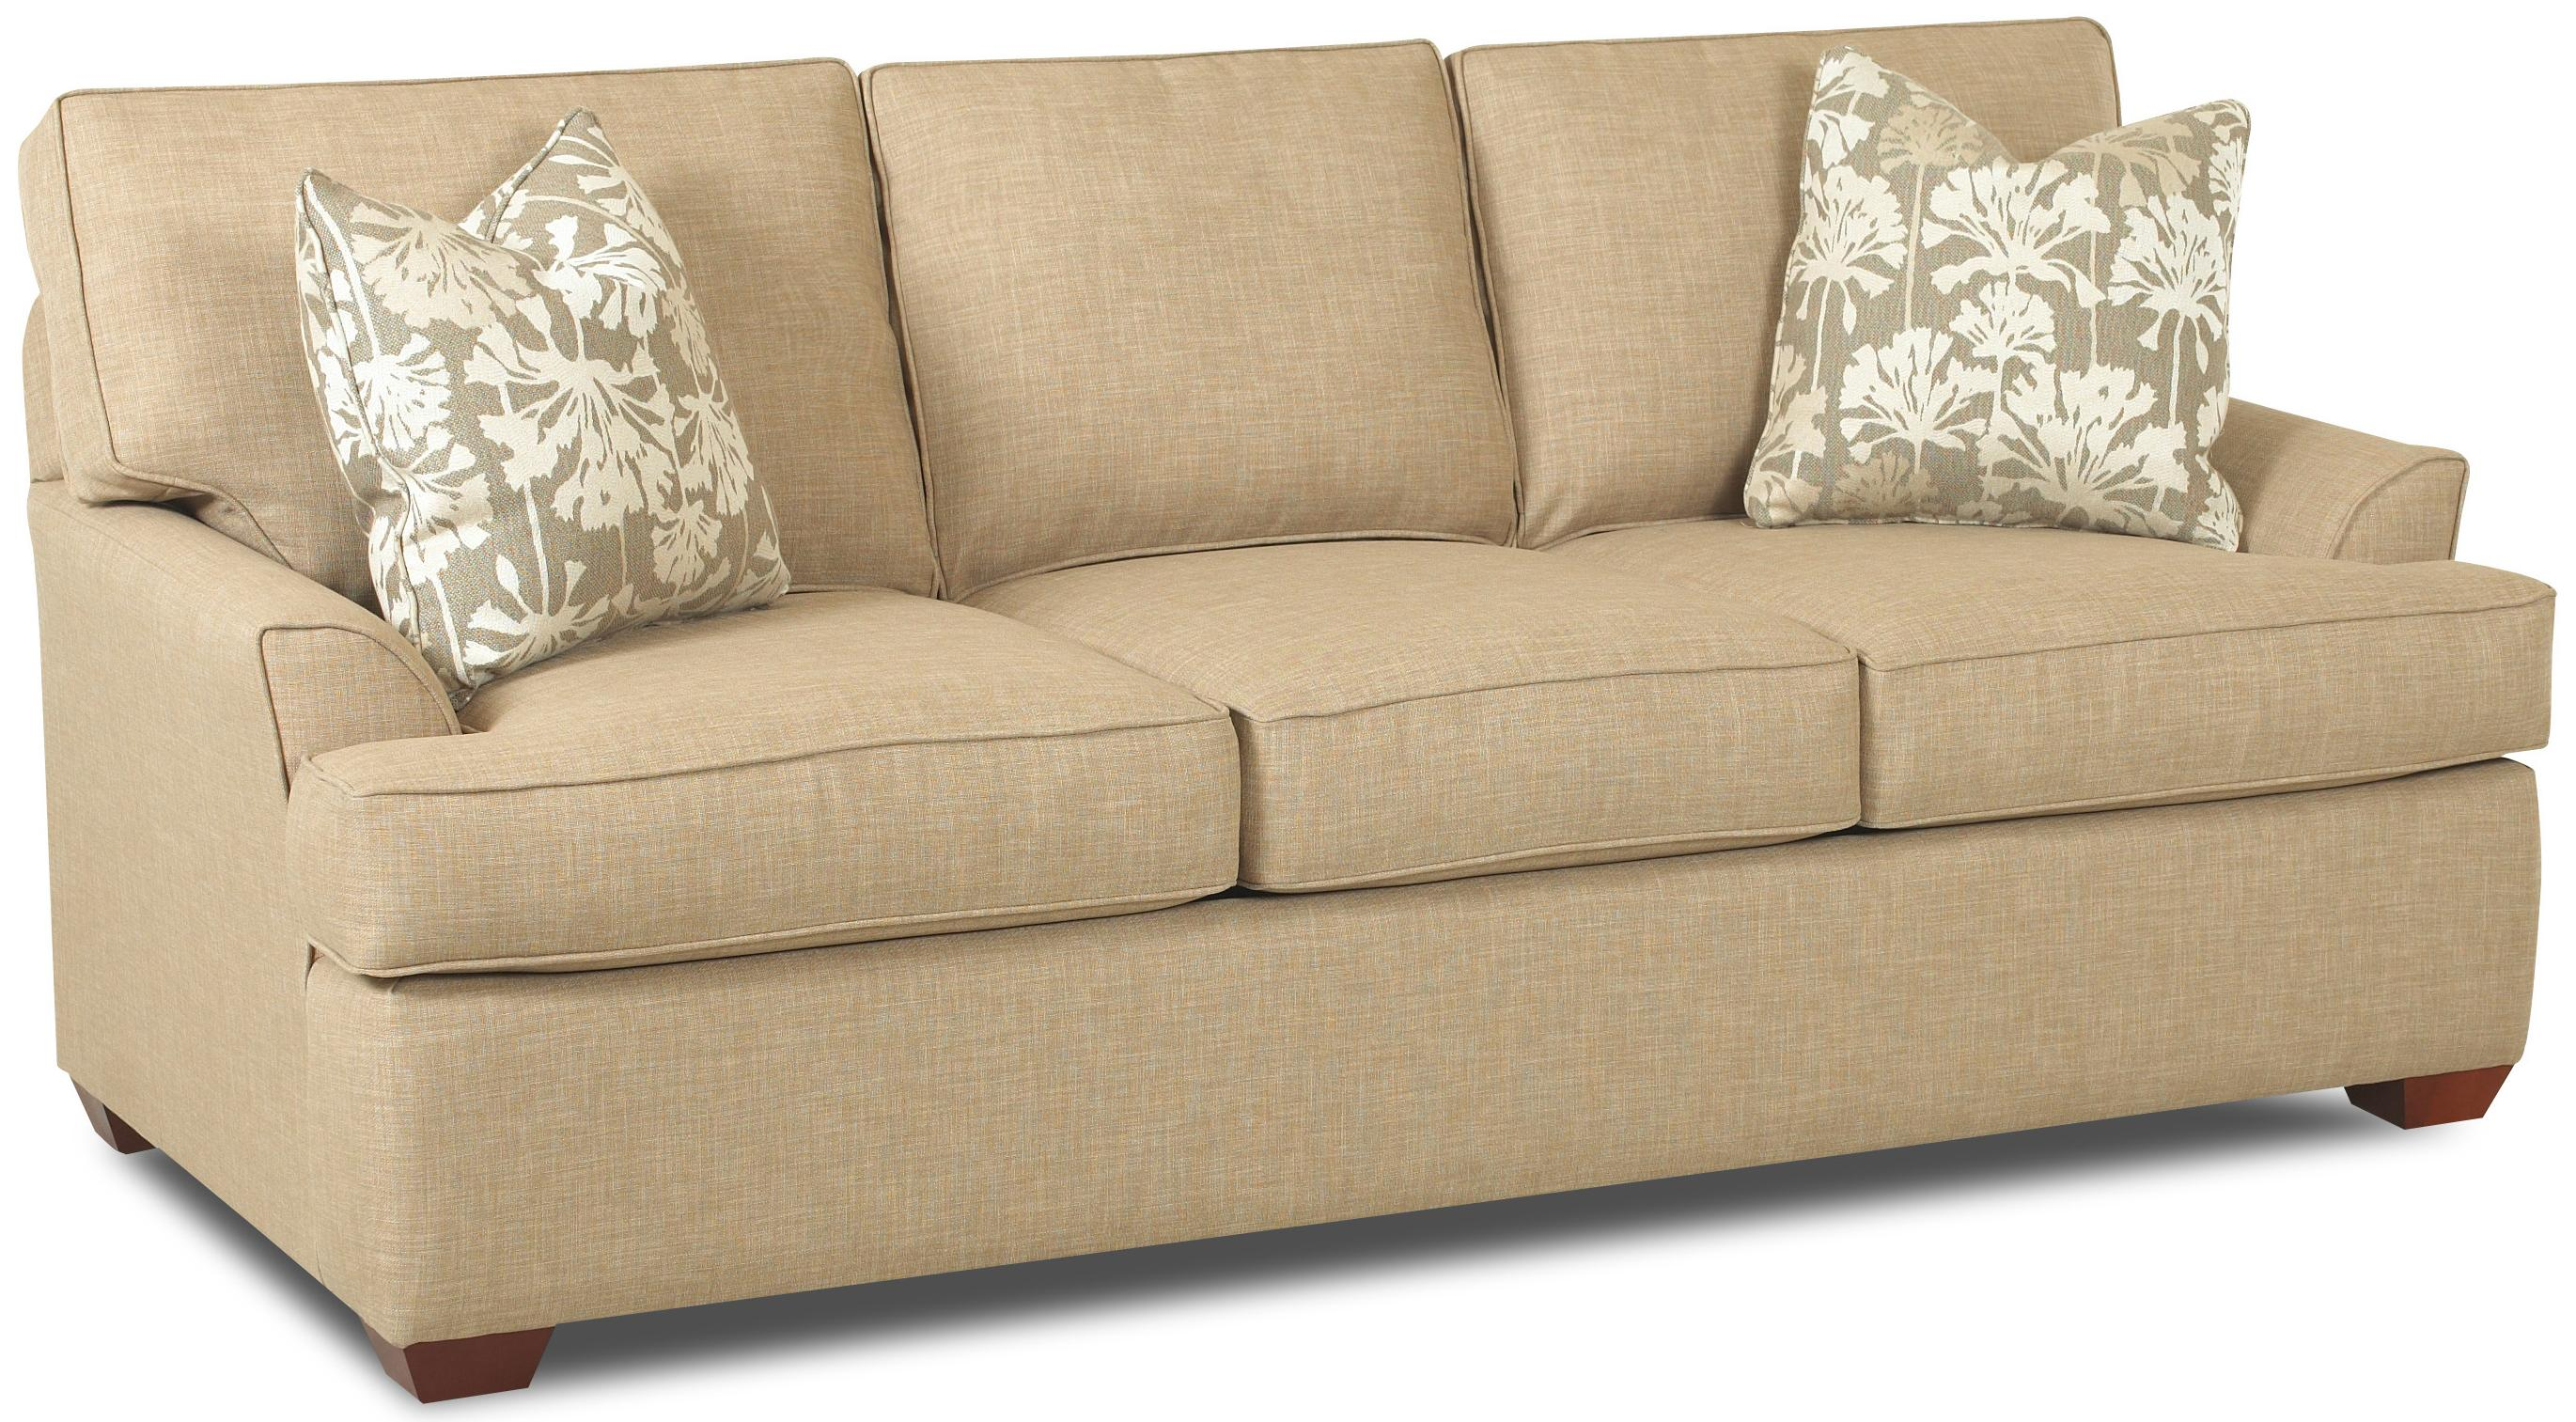 Contemporary 3 Seat Queen Innerspring Sleeper Sofa With Flared Arms